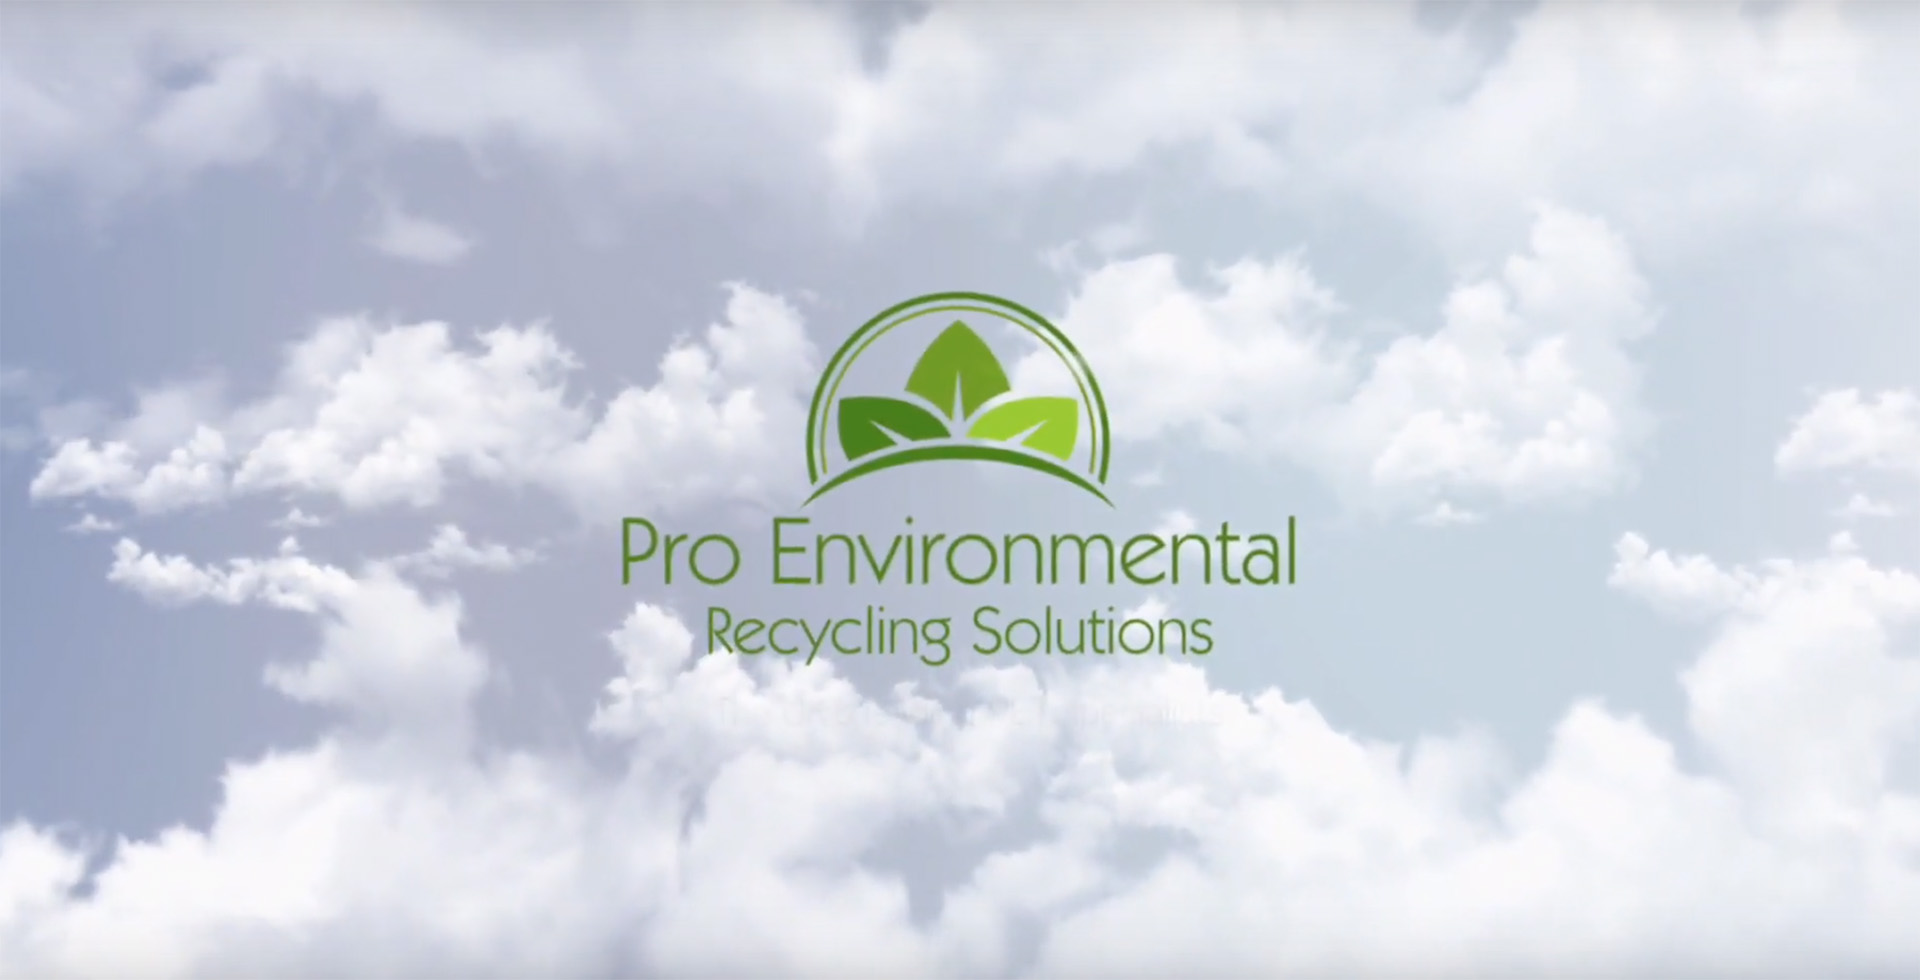 Pro Environmental Video Intro